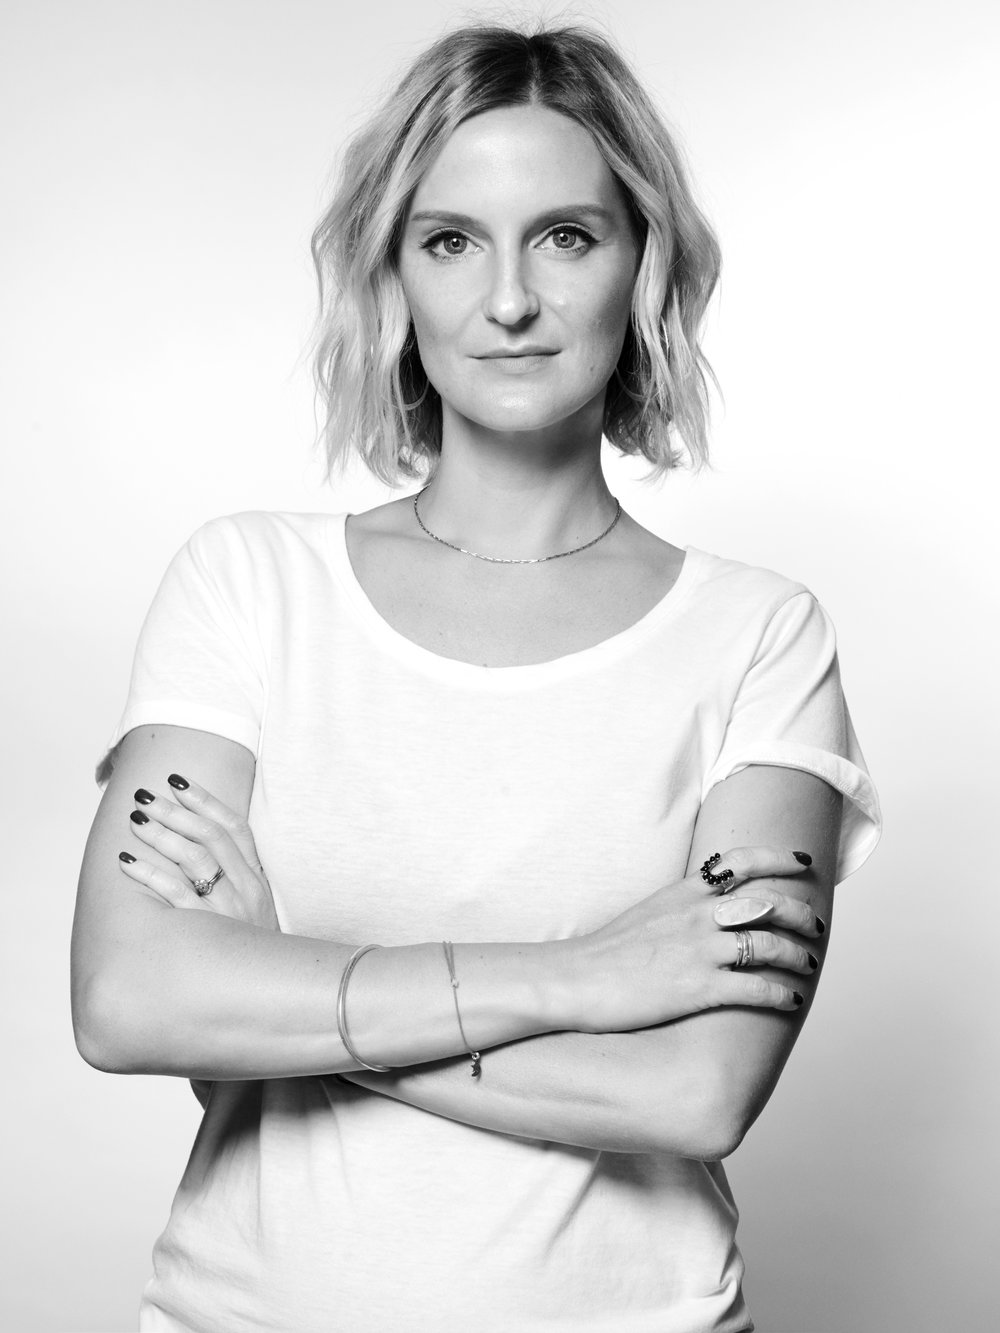 Katy Reeve is National Creative Director for TONI&GUY Australia, mum to Josh (8) and Aden (5) and mentor to 12 core members of the TONI&GUY Artistic Team. Follow Katy @katyreevehair